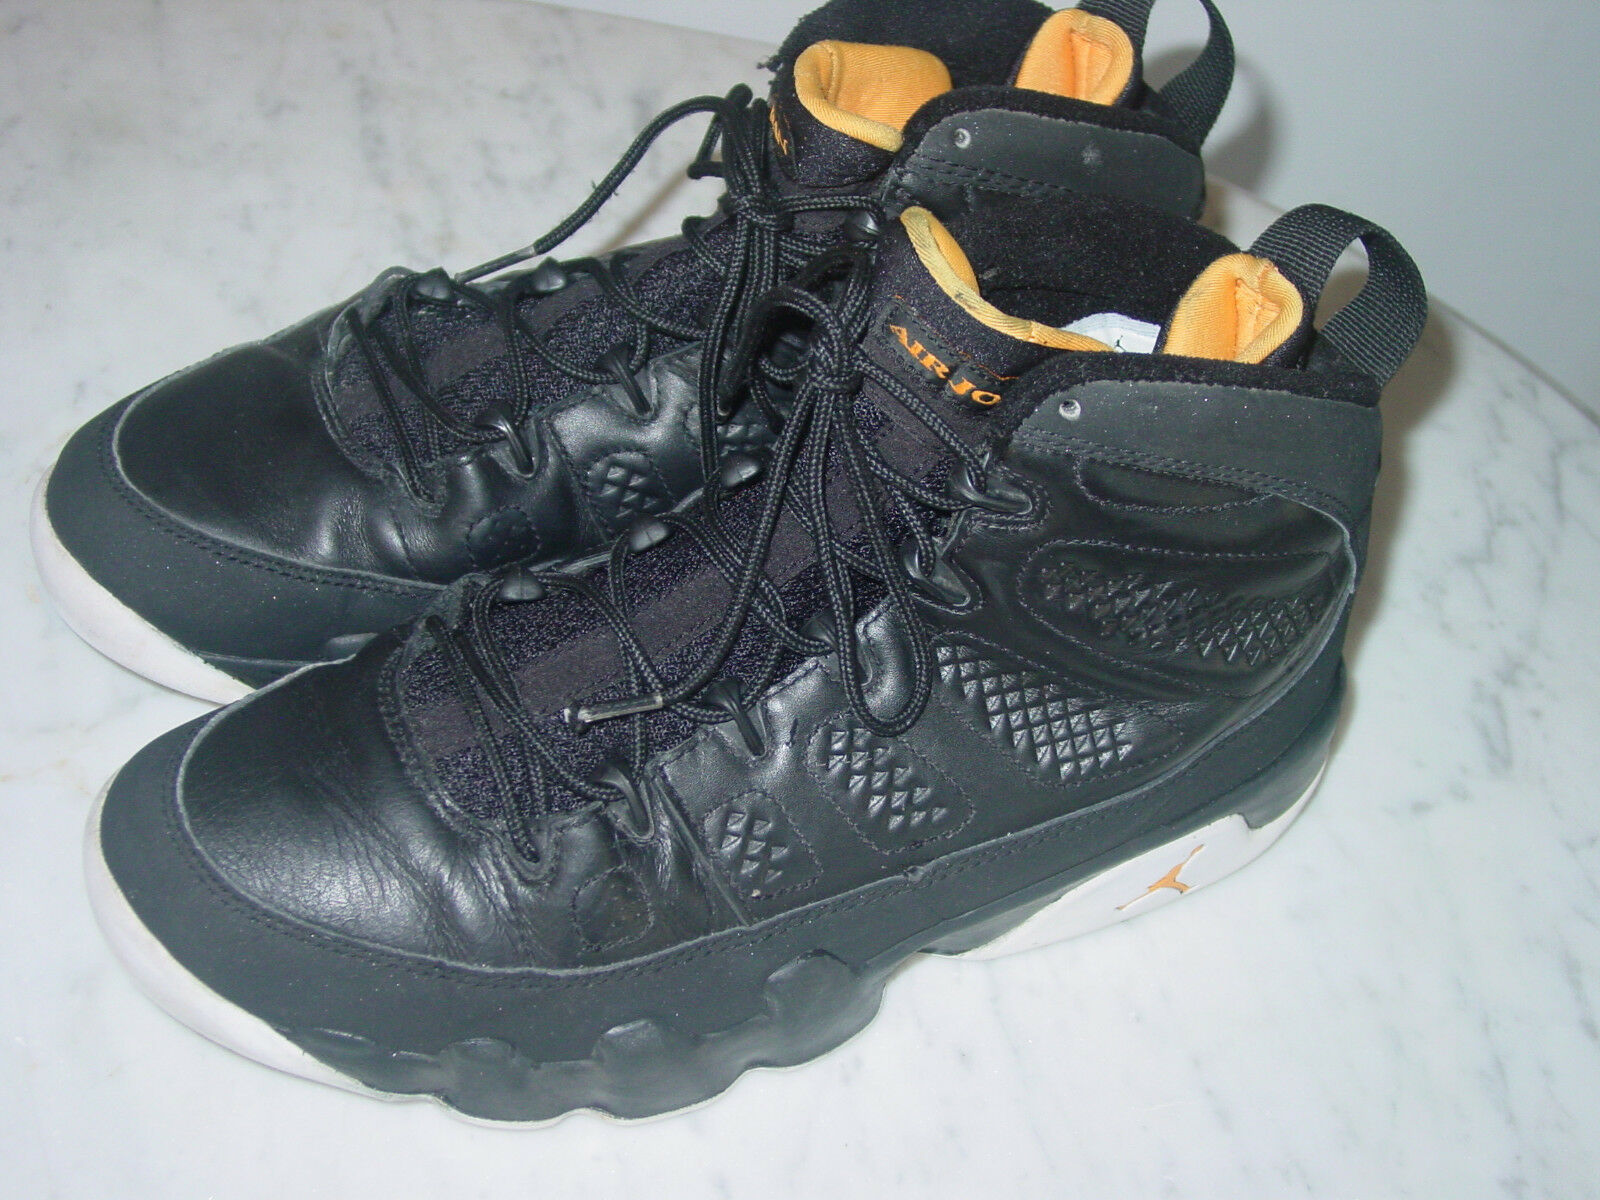 best sneakers 94e95 312f4 ... 2010 Nike Air Jordan Retro 9 ...